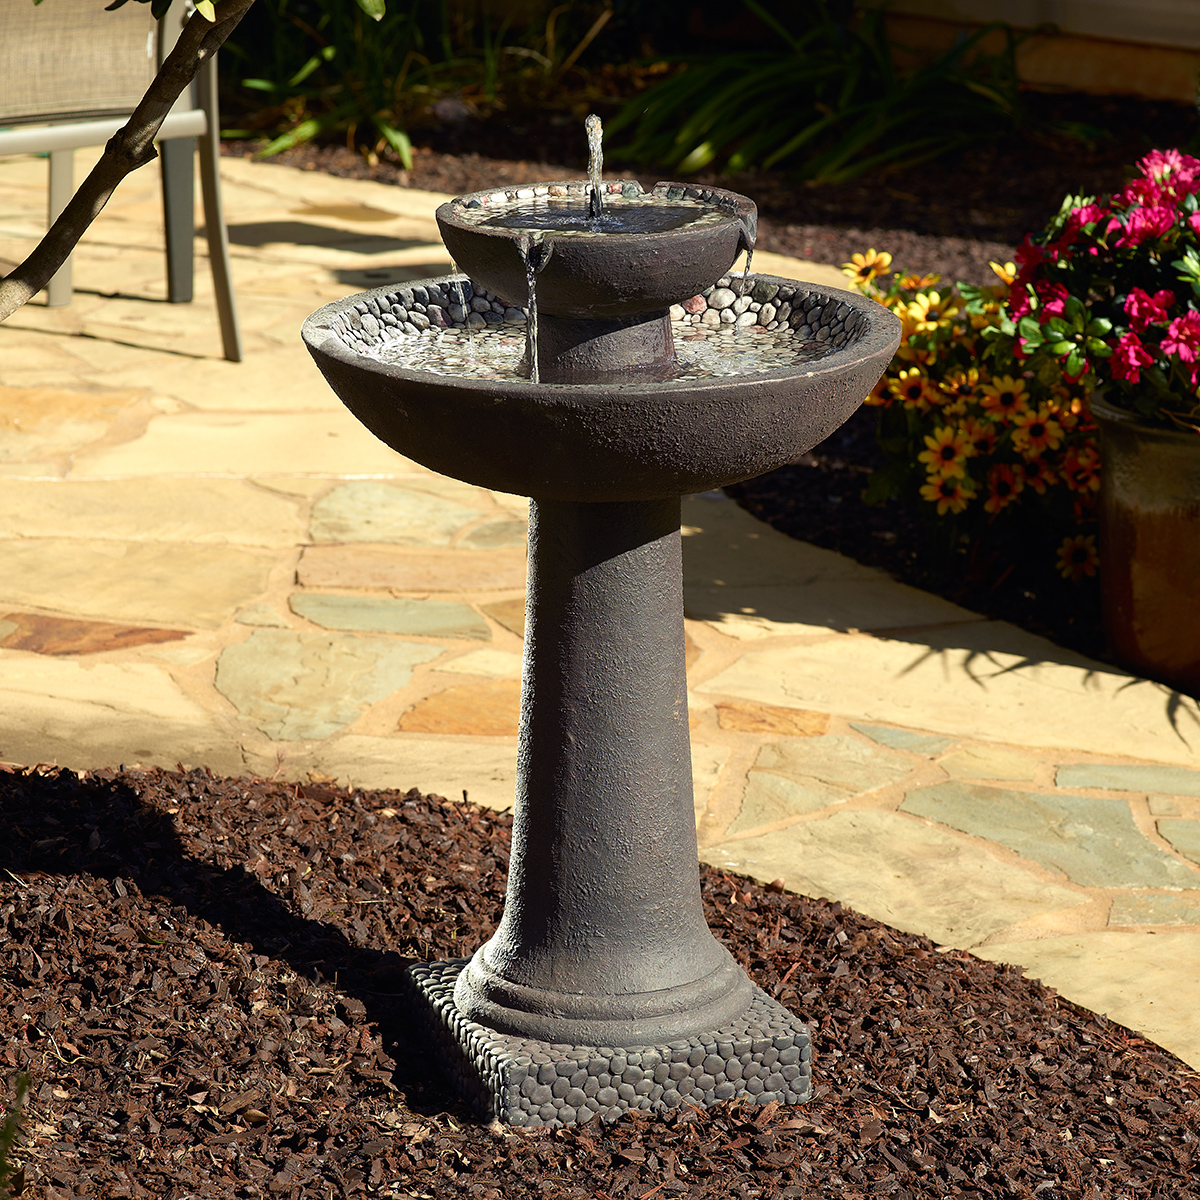 Riverstone Solar-on-Demand 2-Tier Fountain Brown by Smart Living Home & Garden